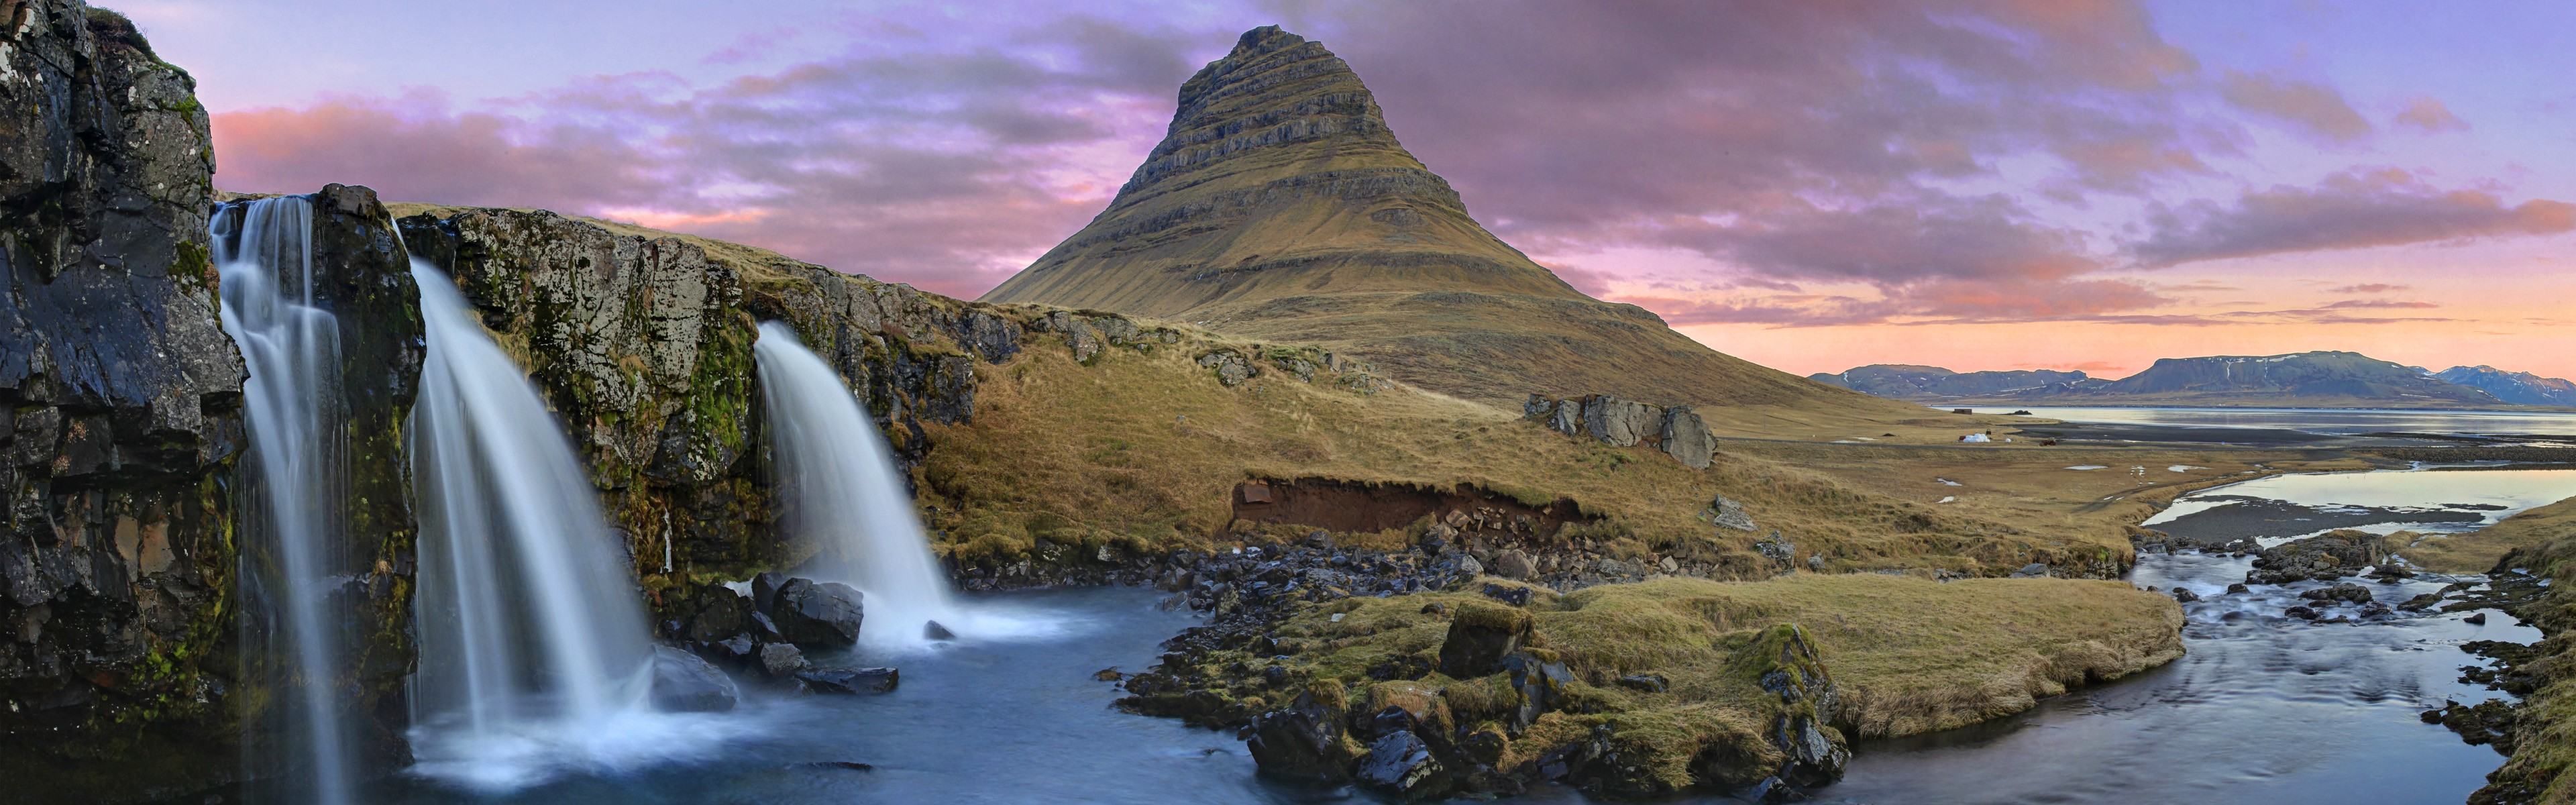 3d Wallpaper Widescreen Waterfalls Kirkjufell Mountain Waterfalls Iceland Wallpapers Hd